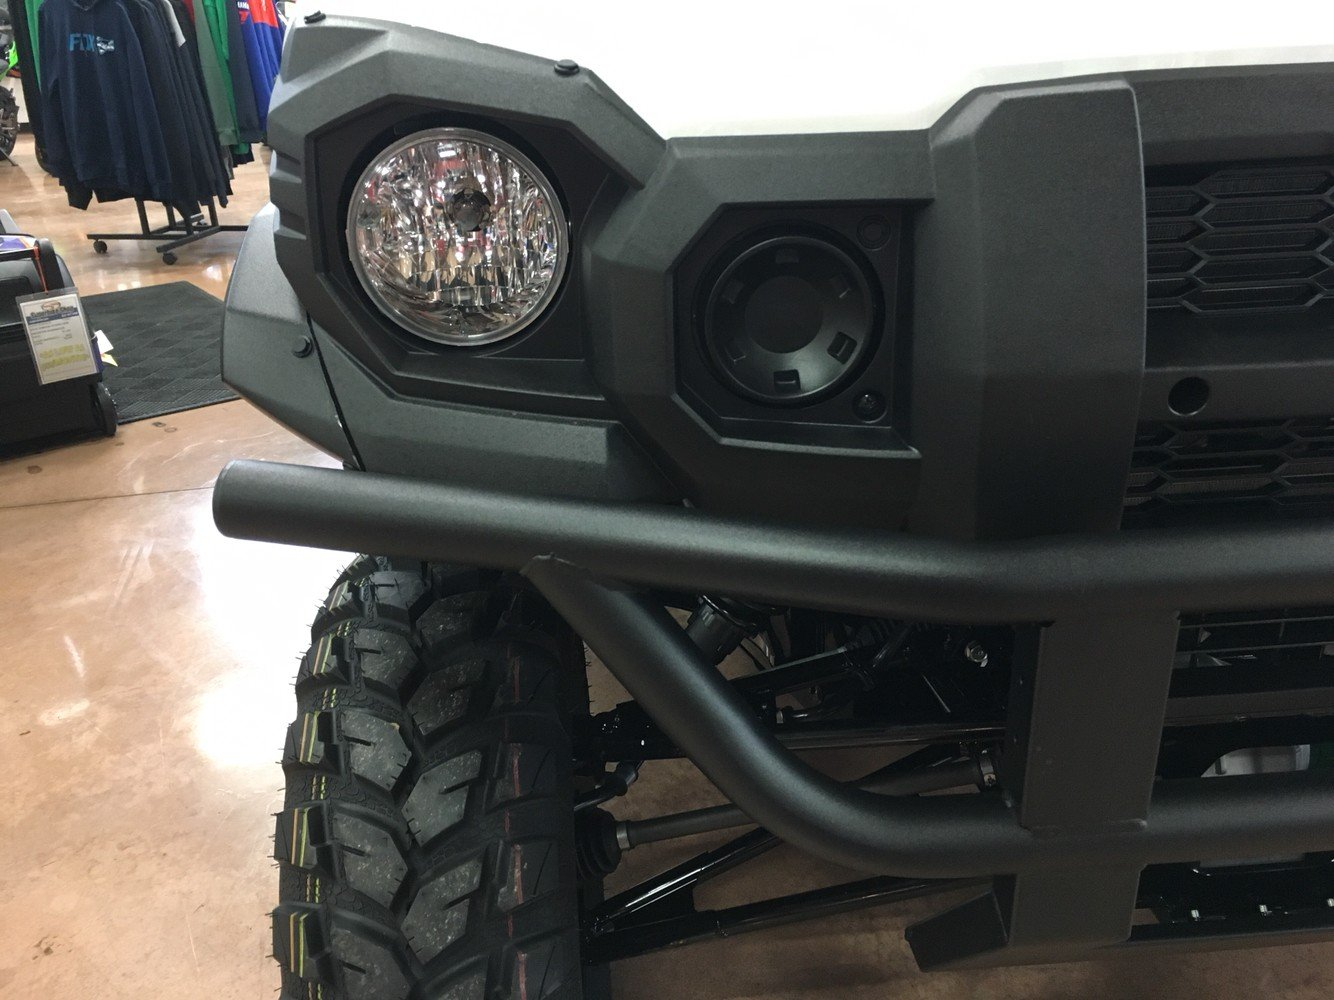 2019 Kawasaki Mule PRO-FXT EPS in Evansville, Indiana - Photo 7